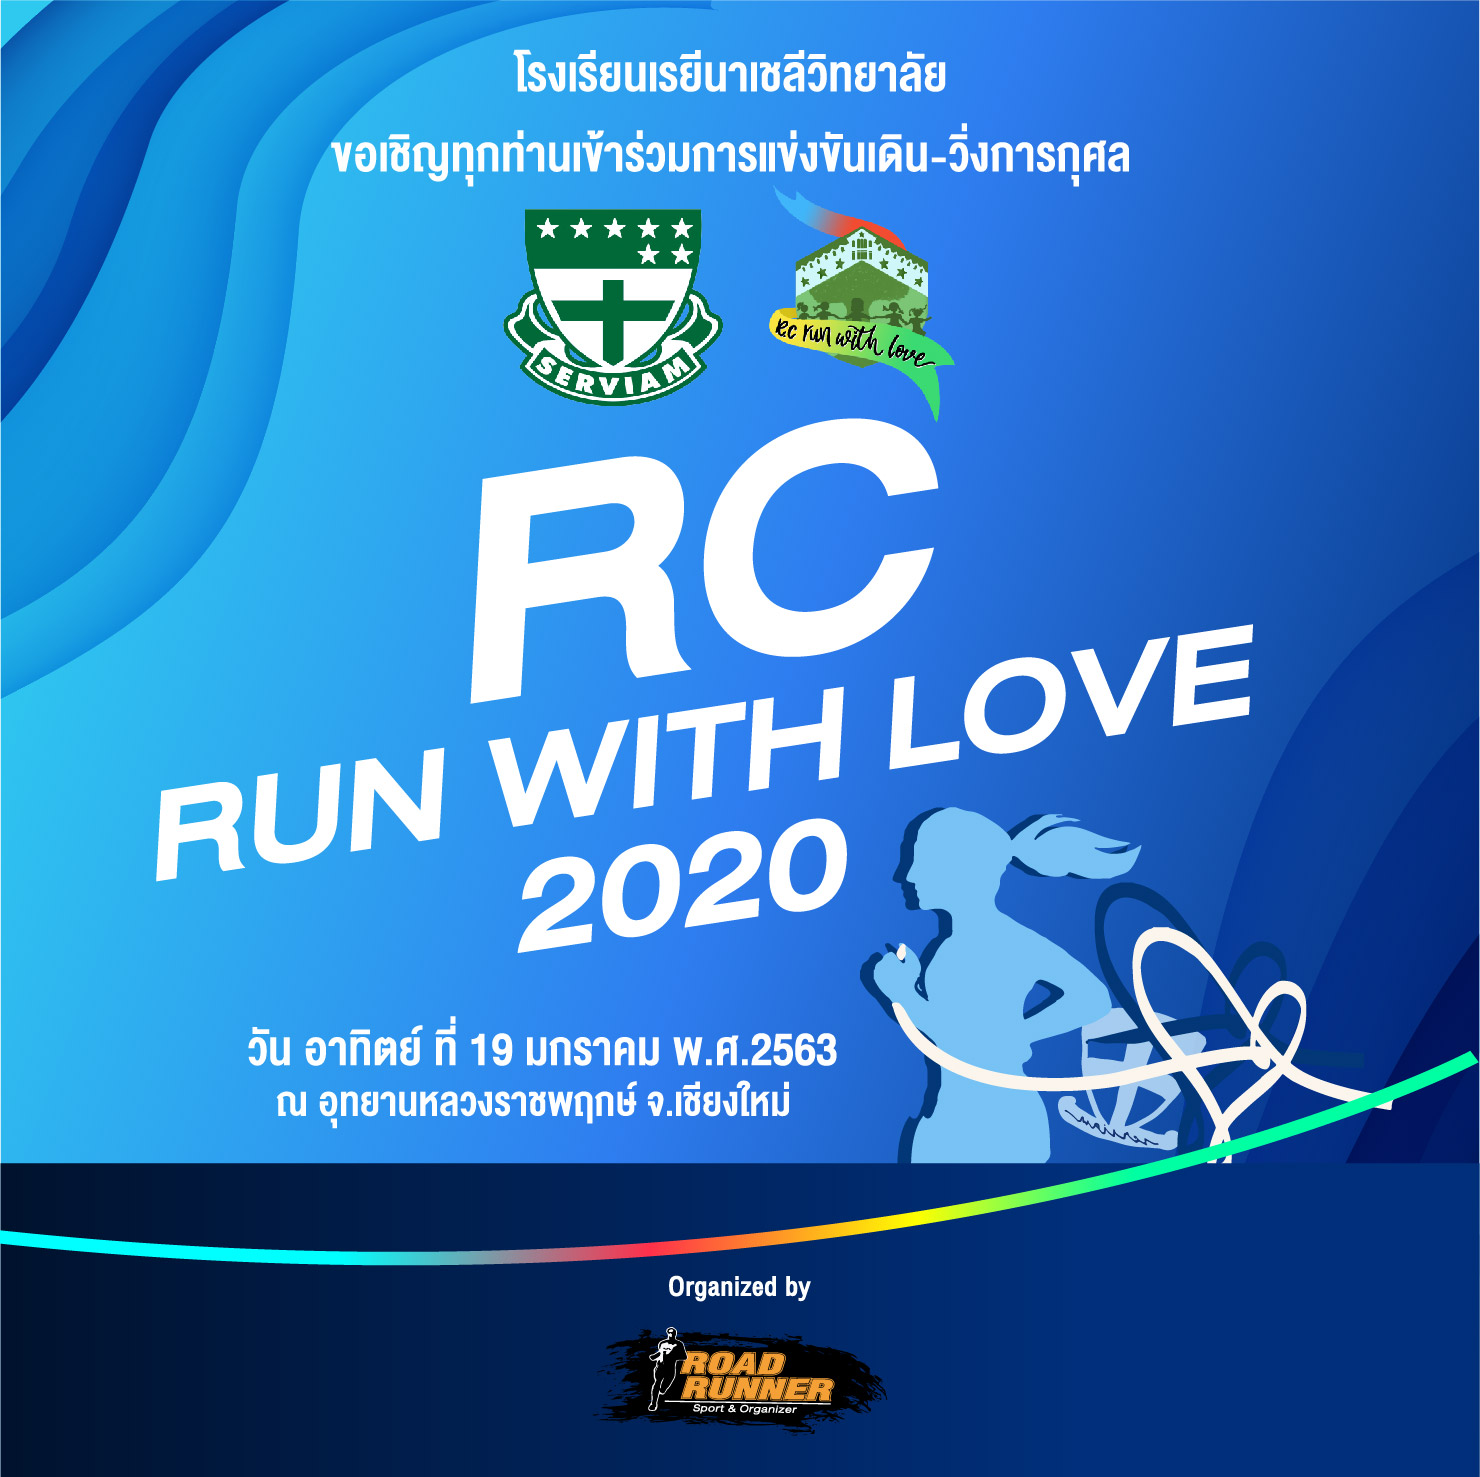 RC RUN WITH LOVE 2020